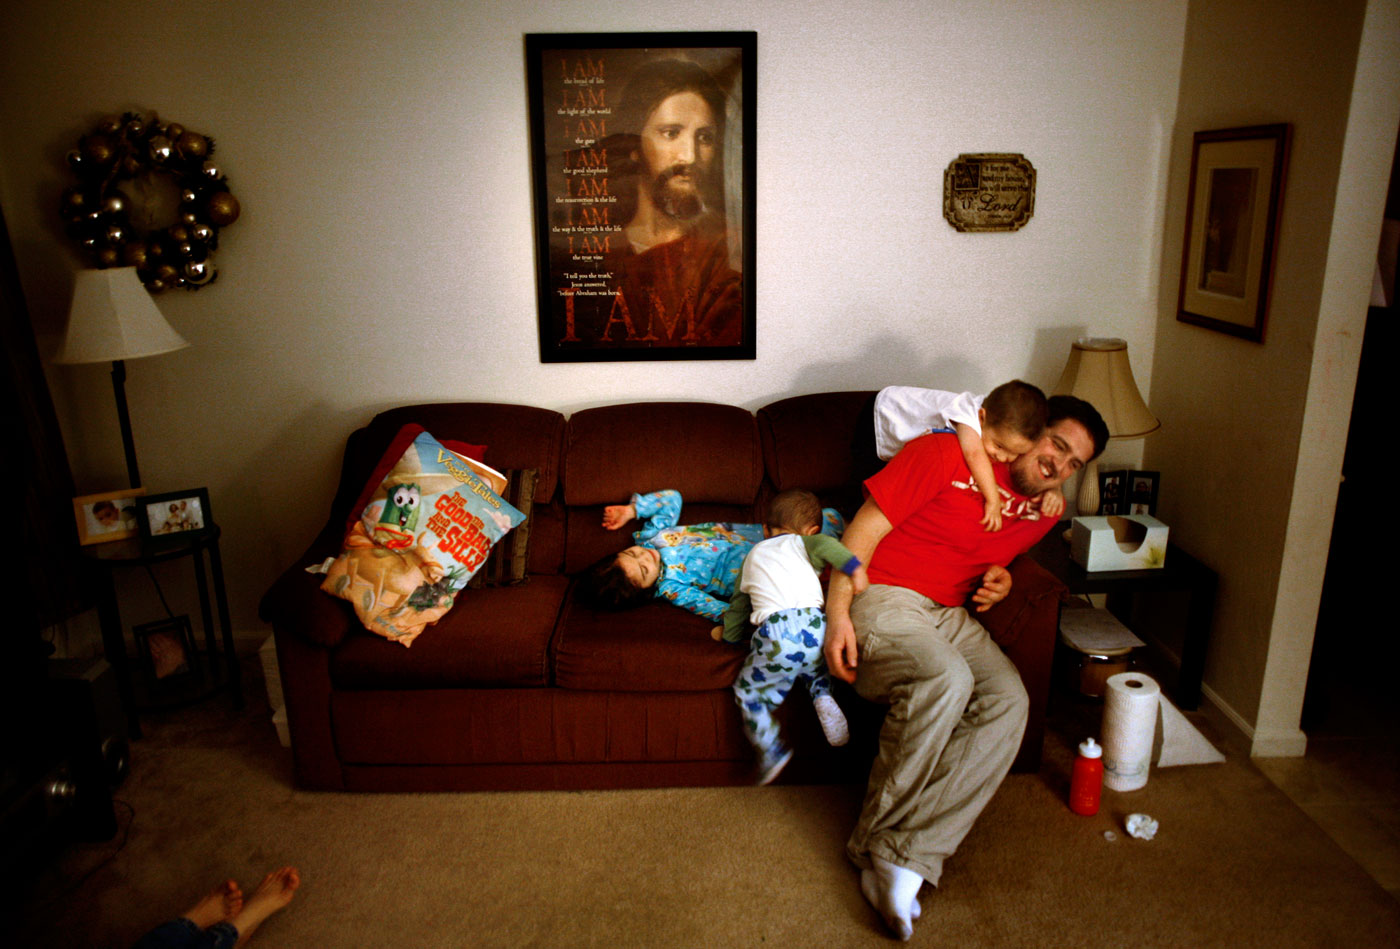 "Jacob Kendrick, 2, pounces in his padded dinosaur pajamas onto his father, Mike Kendrick, as his other son, Dylan, 3, drapes over his back. His daughter Lily, 5, laughs.It's all under the watchful eye of a Jesus Christ poster that proclaims {quote}I Am.{quote}The poster hangs as a centerpiece of their living room.  ""It's important for our kids to constantly see that he is our solid rock,"" said Mike. ""It's like having a picture of a loved one in your office.""It's a prelude to a nightly worship time for the Virginia Beach family. On this evening, the kids are wound up and needed to bounce out some energy before prayer.""I think it's what holds us together, having the altar time,"" said Nereida, Mike's wife.  ""It's important  for them to know that we're there for them, and that Christ is there for them as well."""